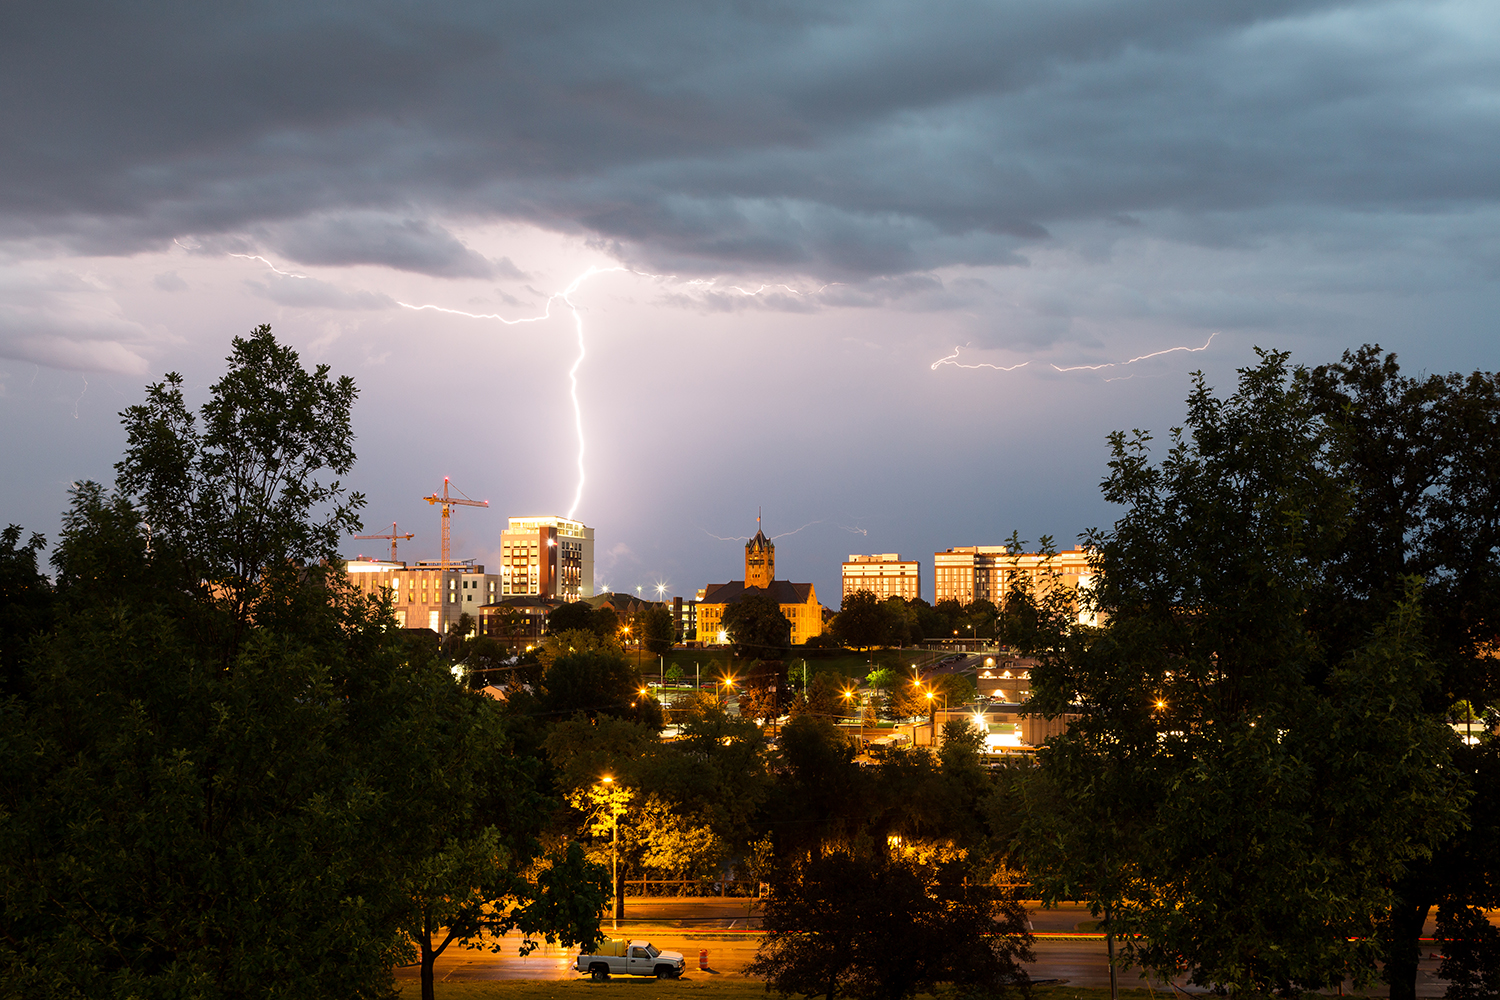 Lighting strikes a building in downtown Iowa City on Tuesday, Aug. 28, 2018.